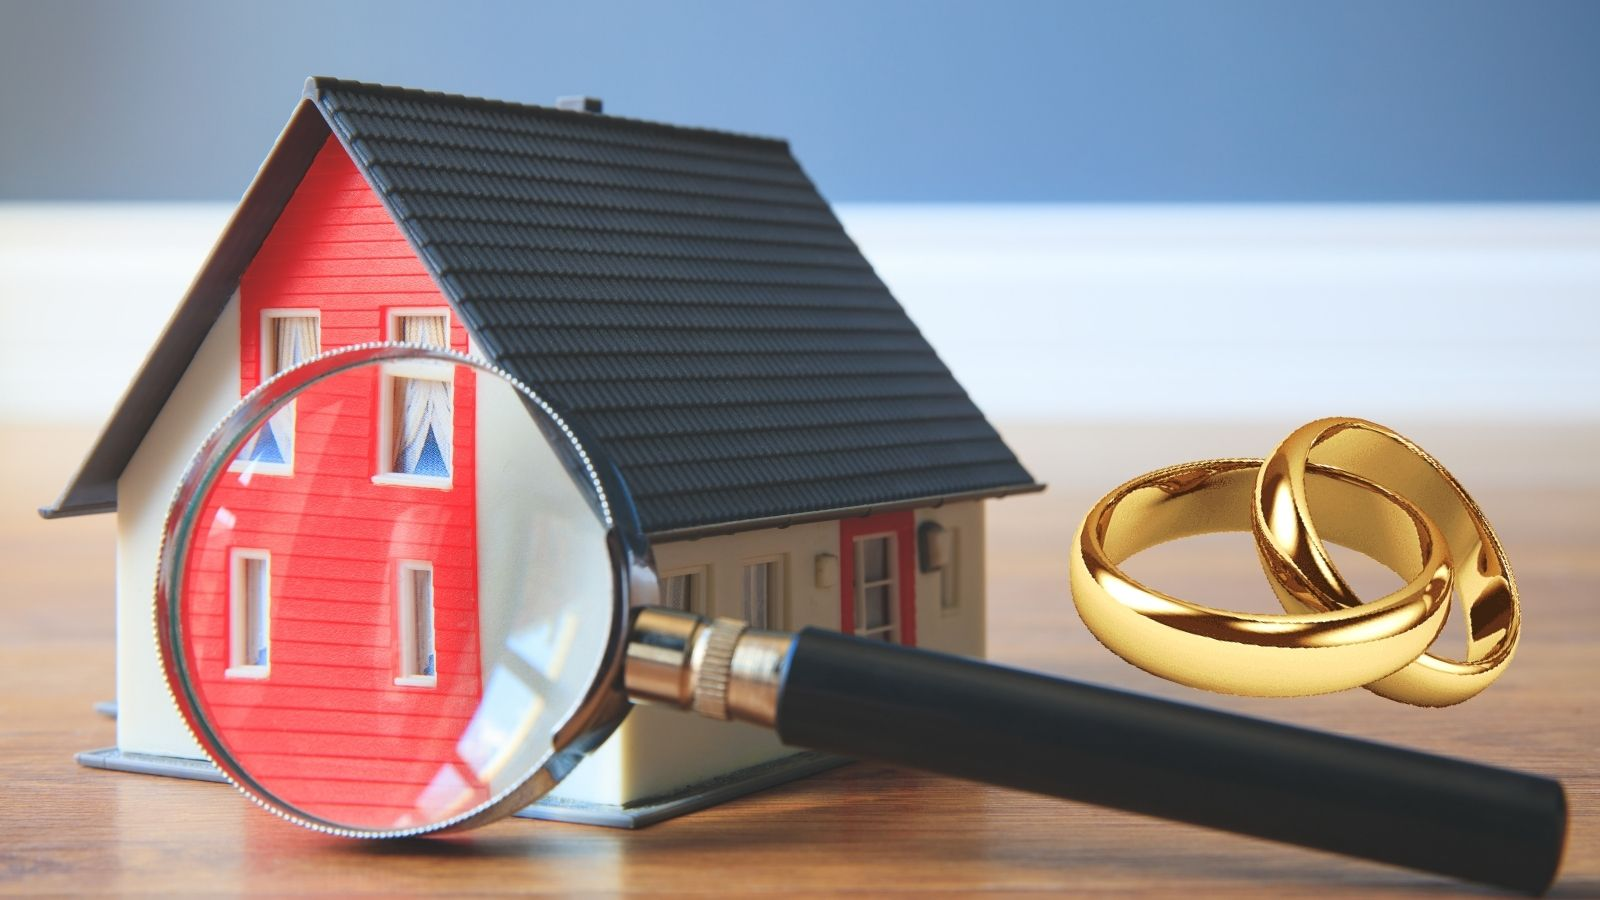 How To Buy A House Before Marriage